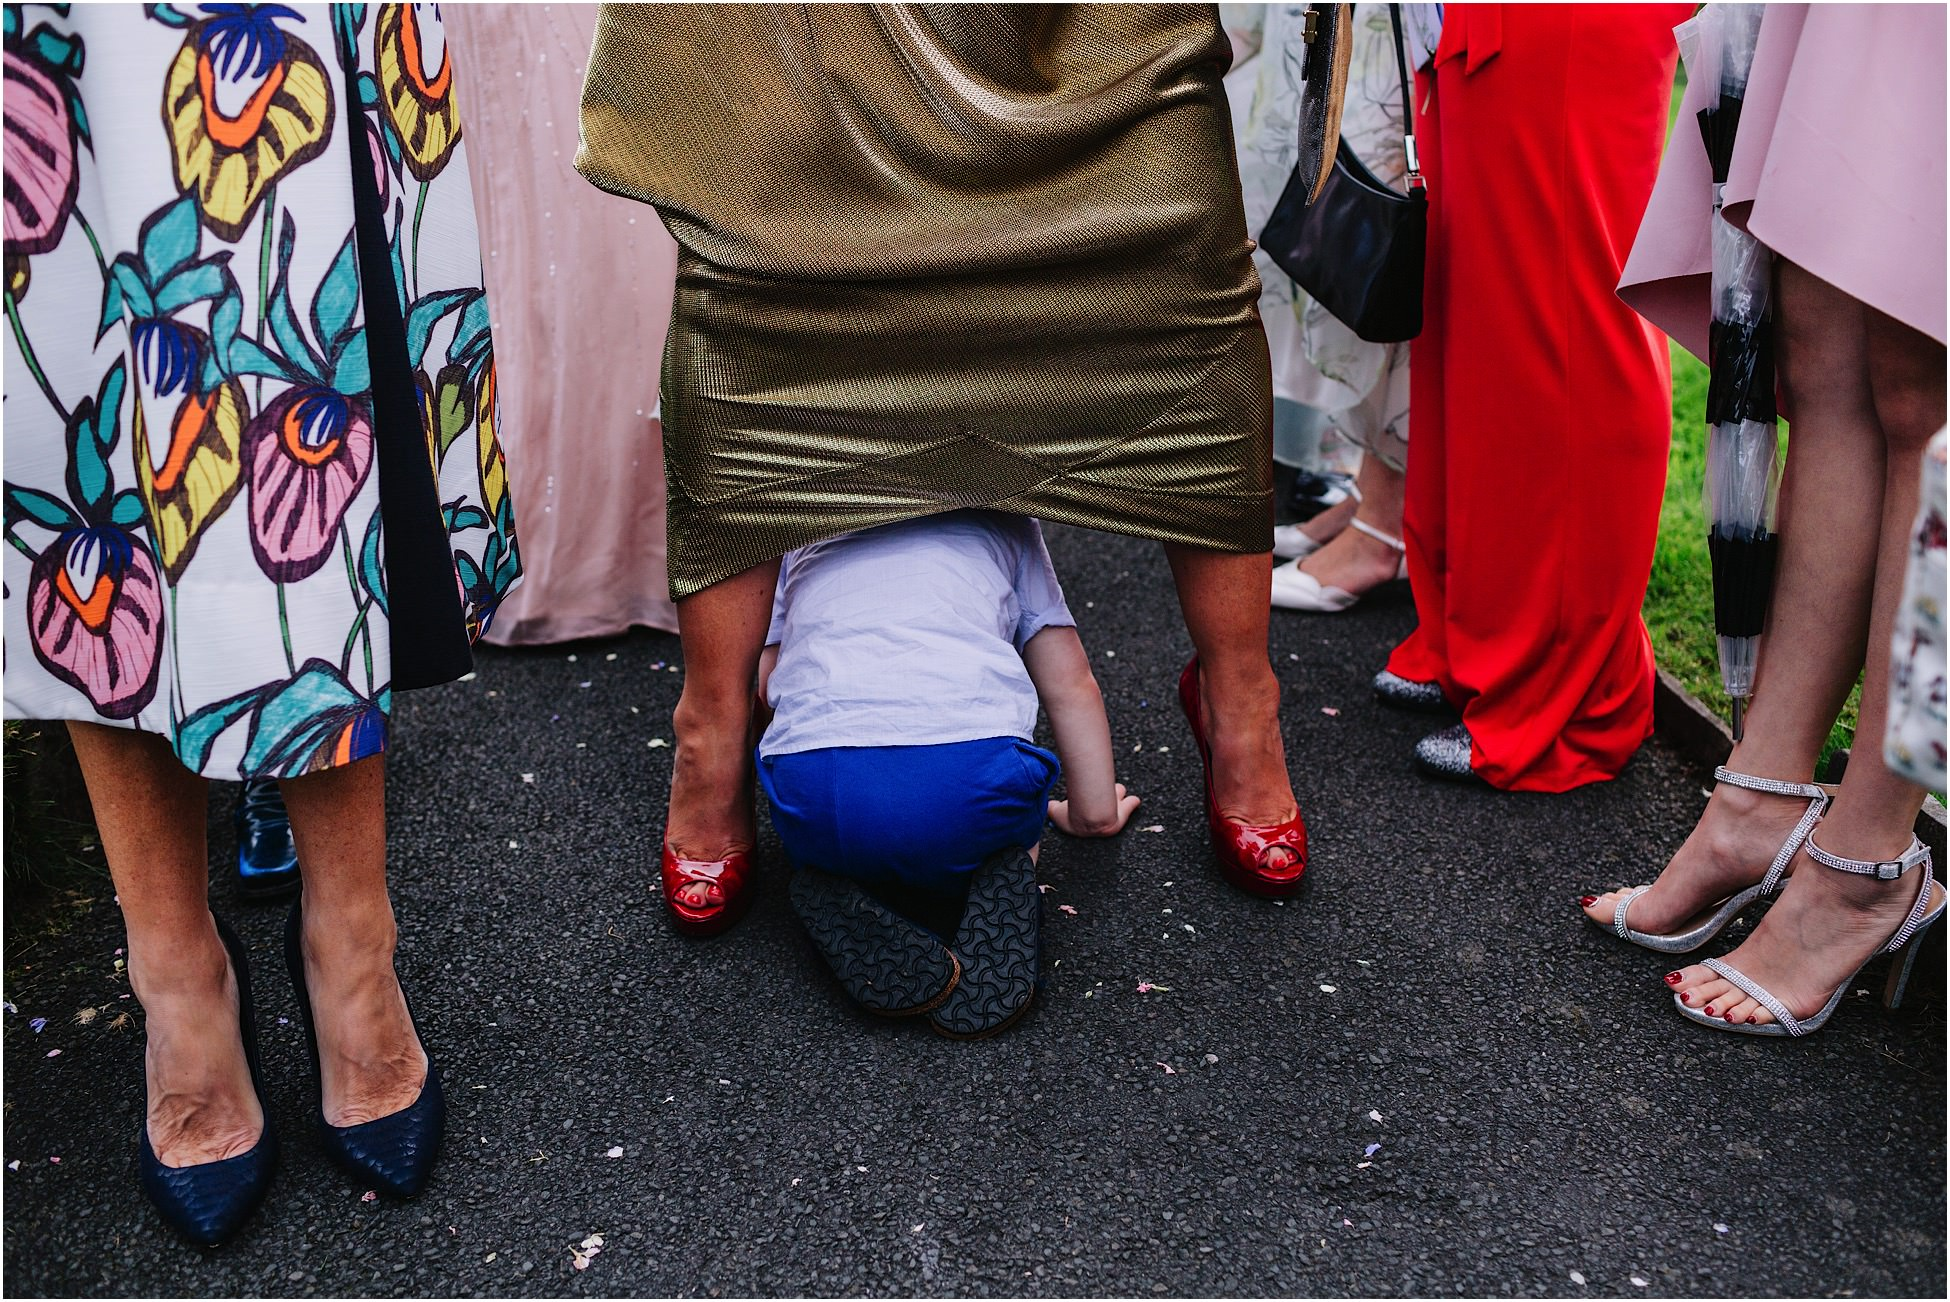 Belmount Hall wedding - a little boy crawls through legs